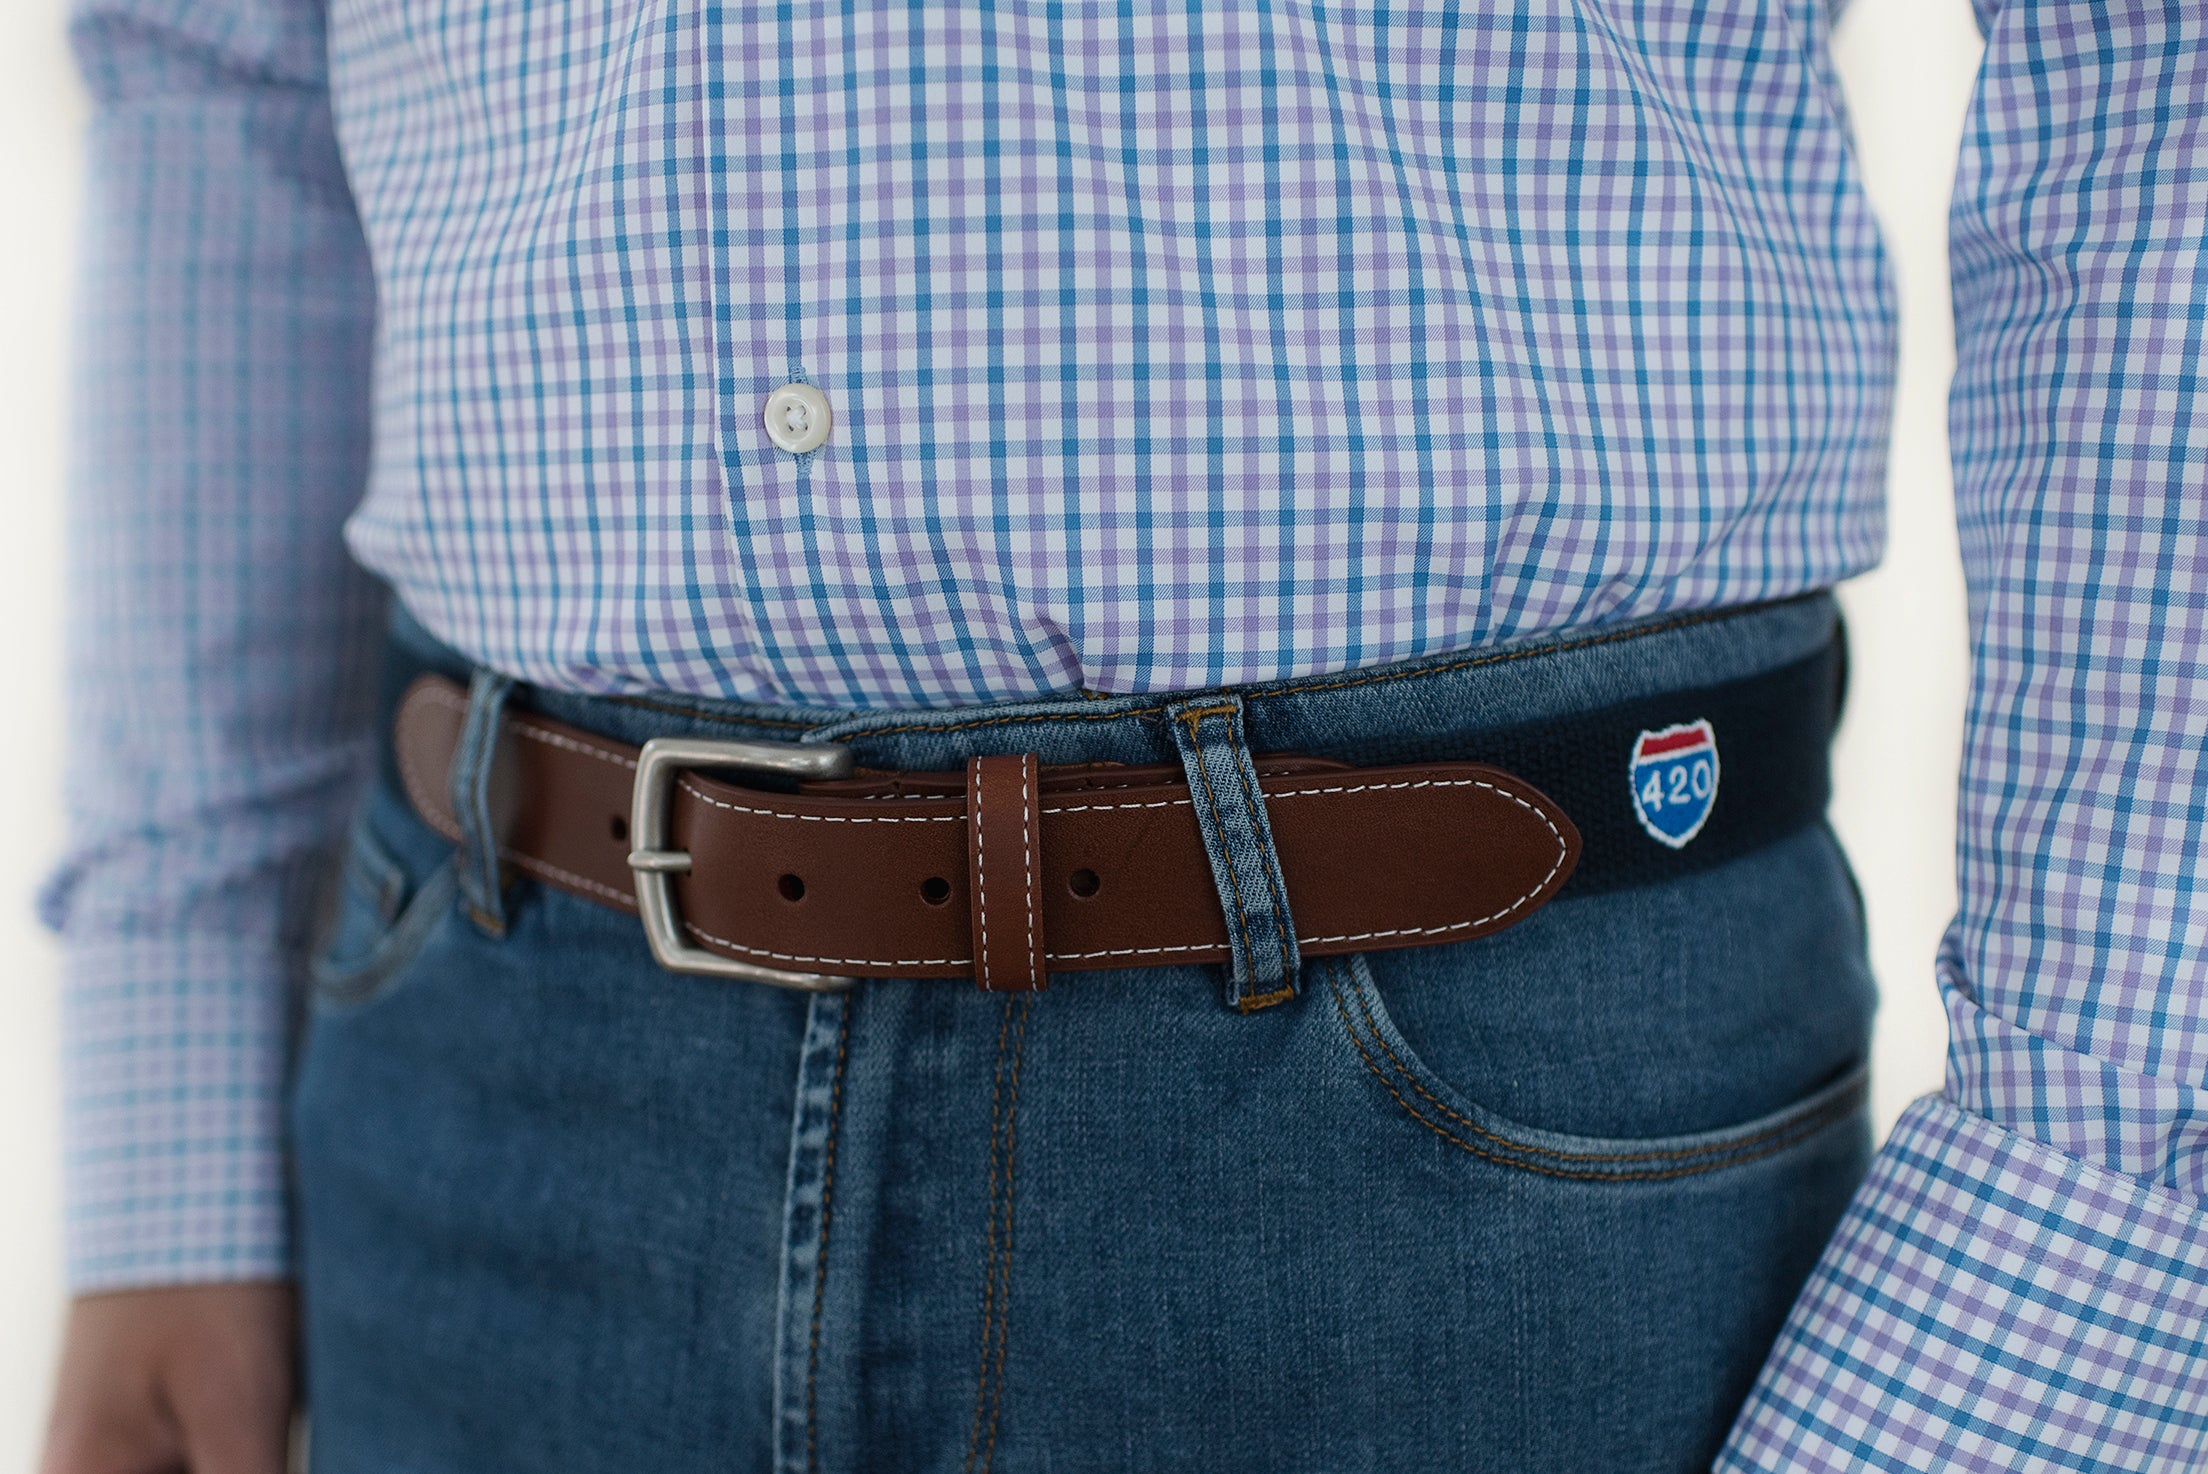 Route 420 Belt (patriot navy)